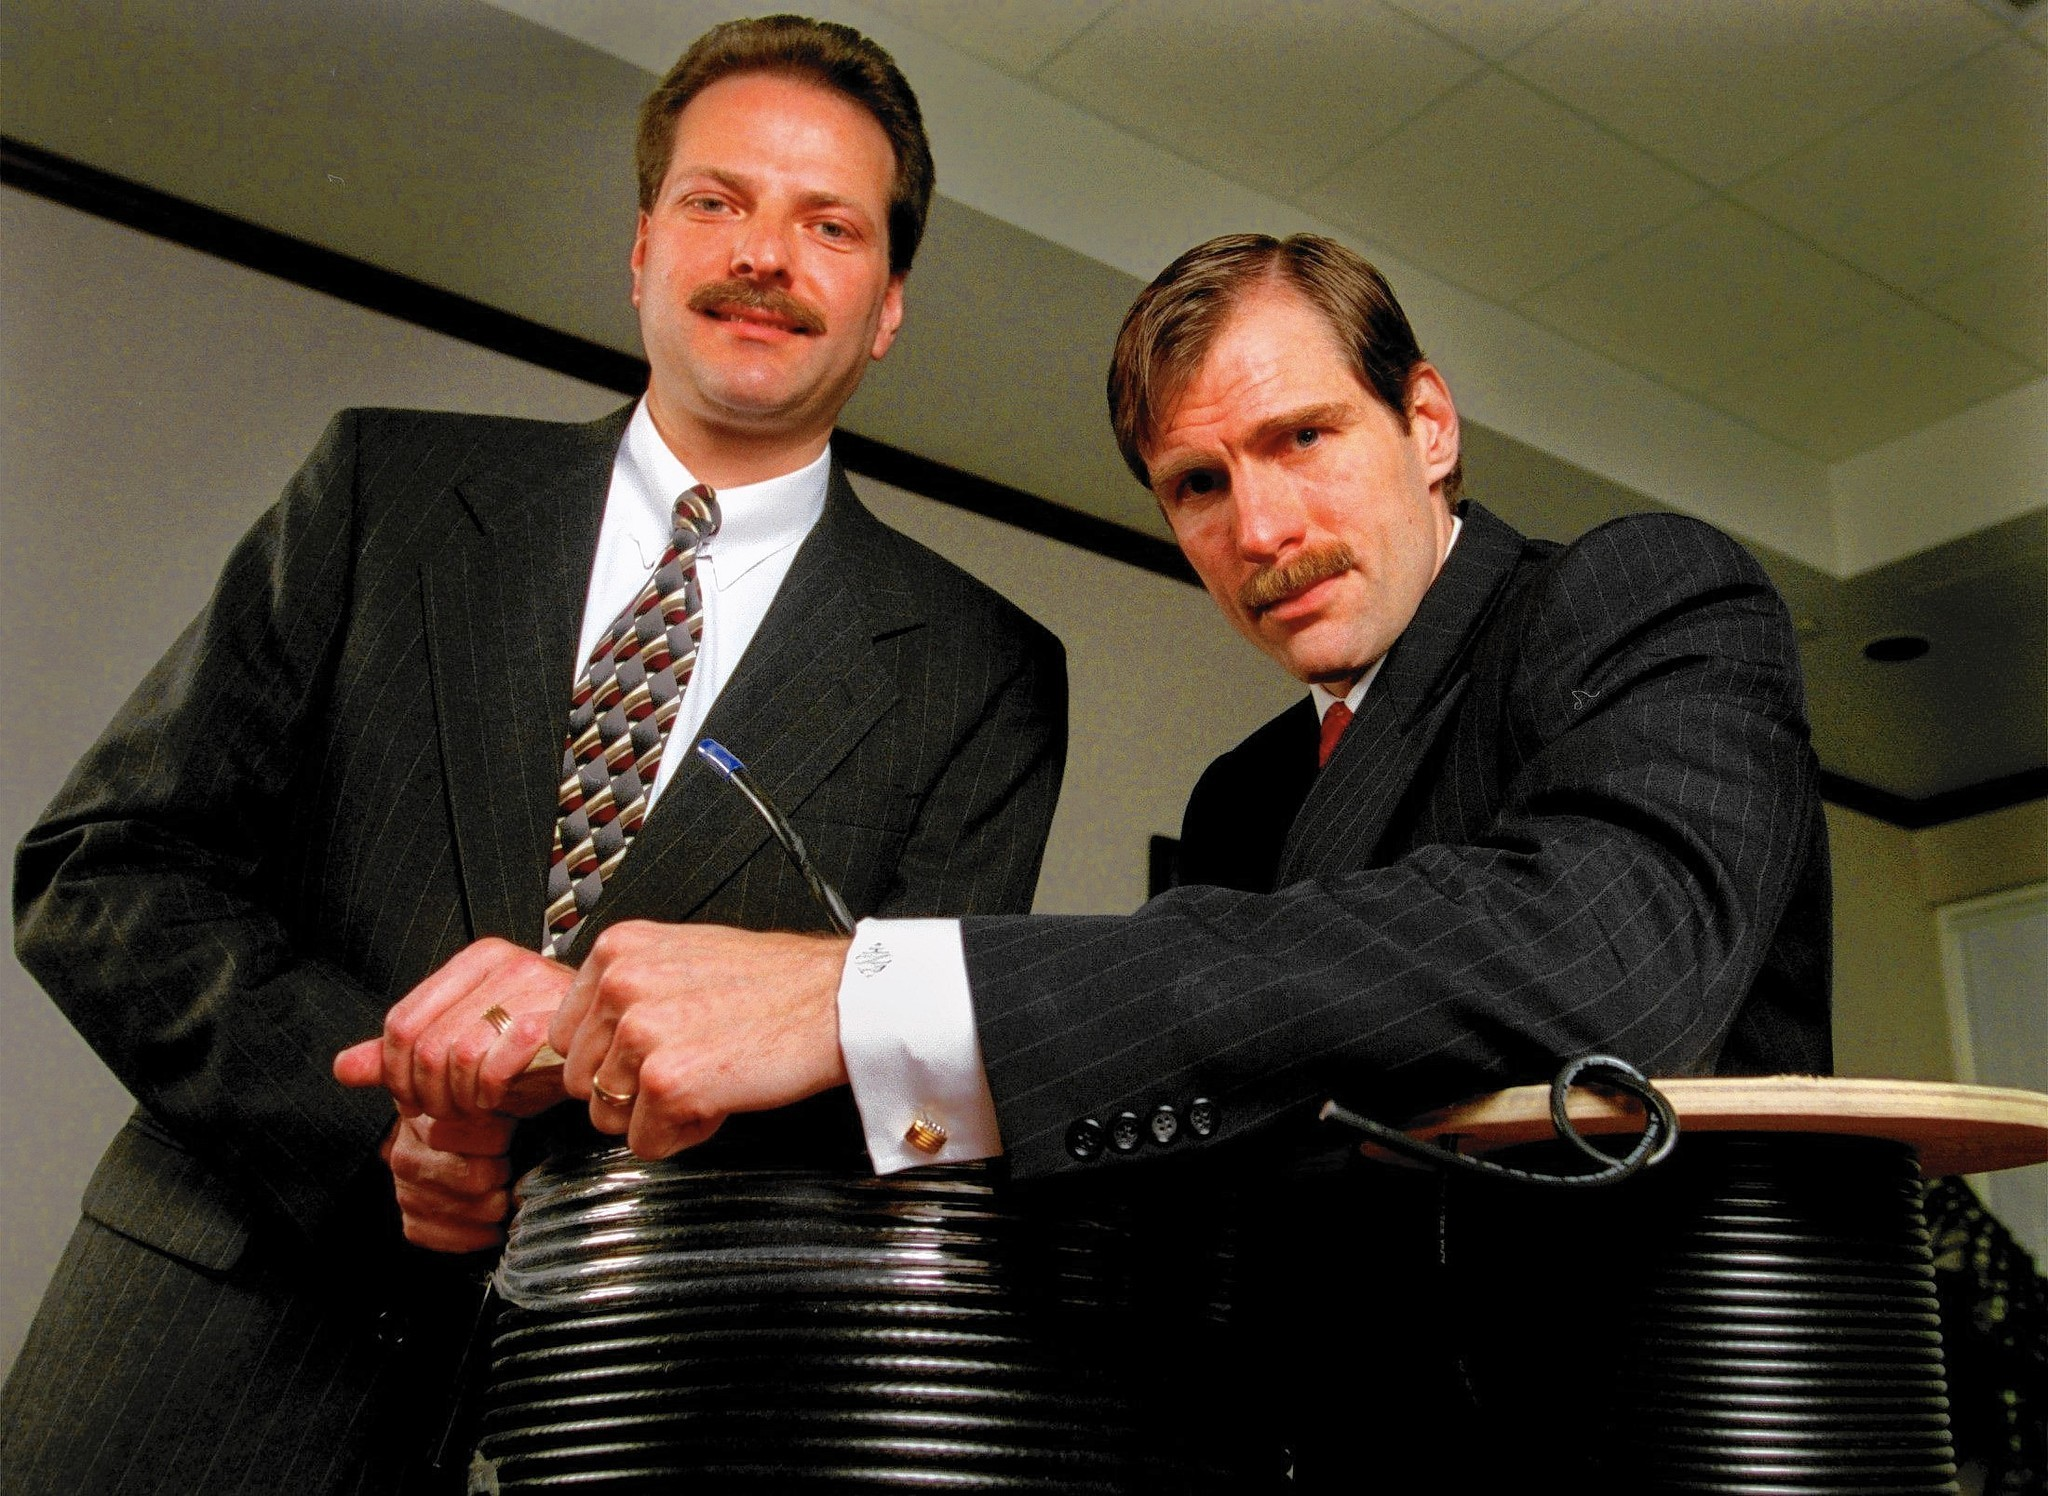 Broadcom's co-founders built a behemoth as a formidable team